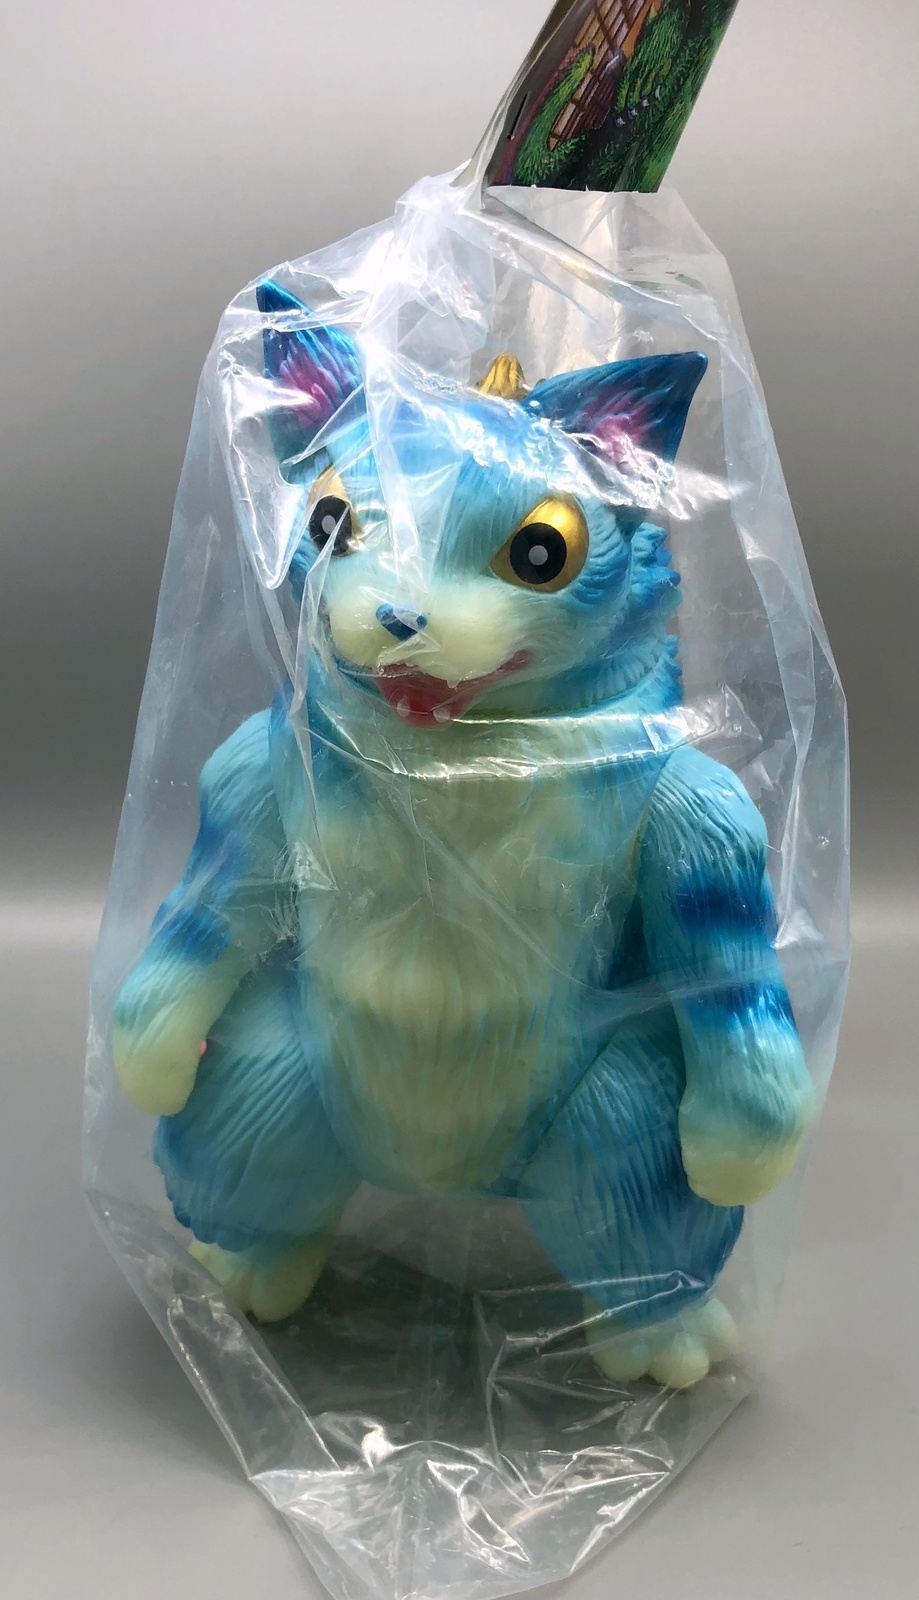 MaxToy GID (Glow in Dark) Blue Stripe King Negora - Rare